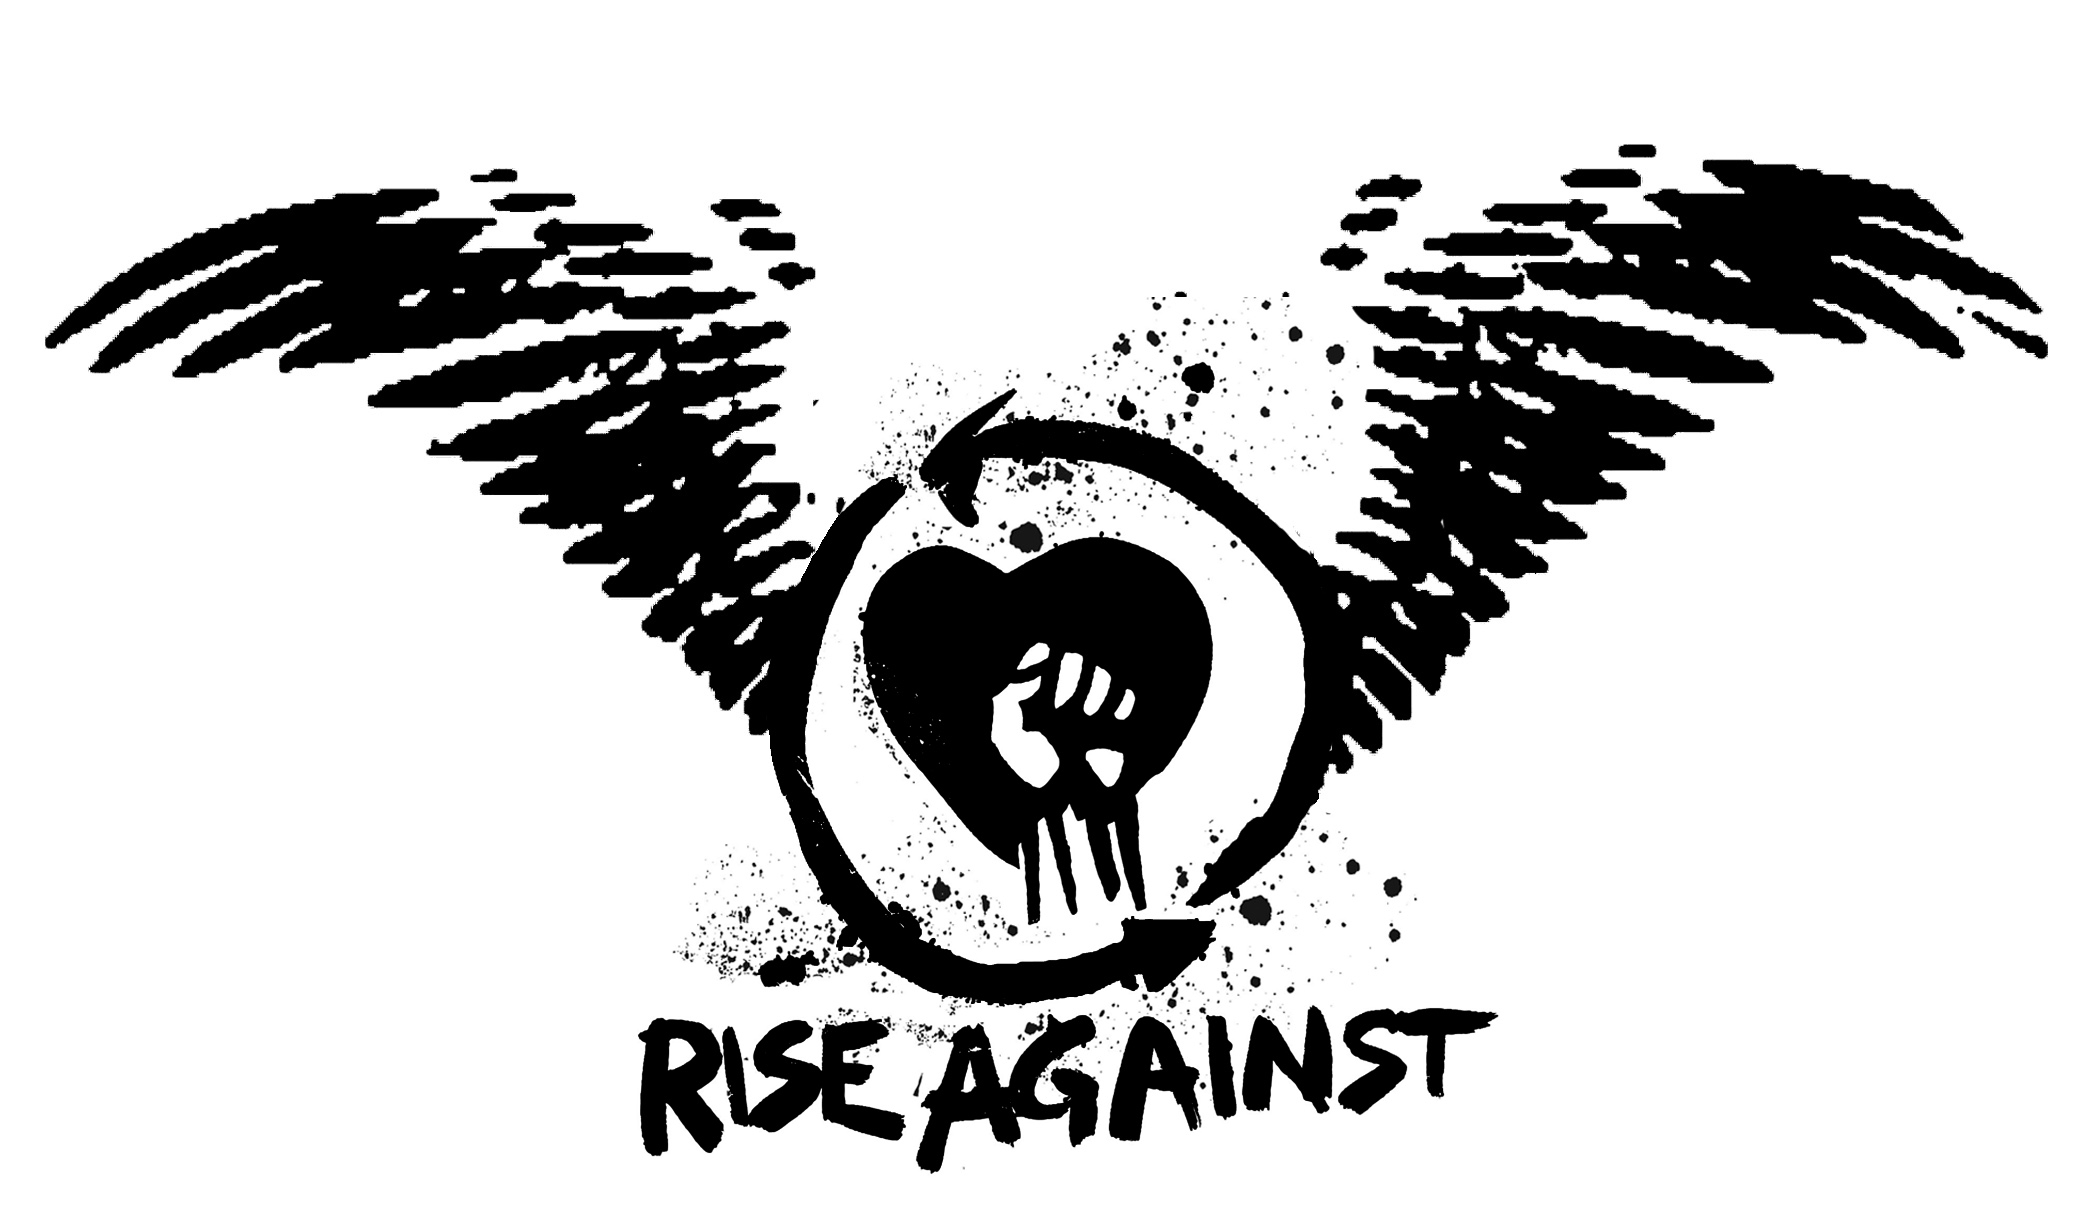 rise against - awesome band image - apothecary888